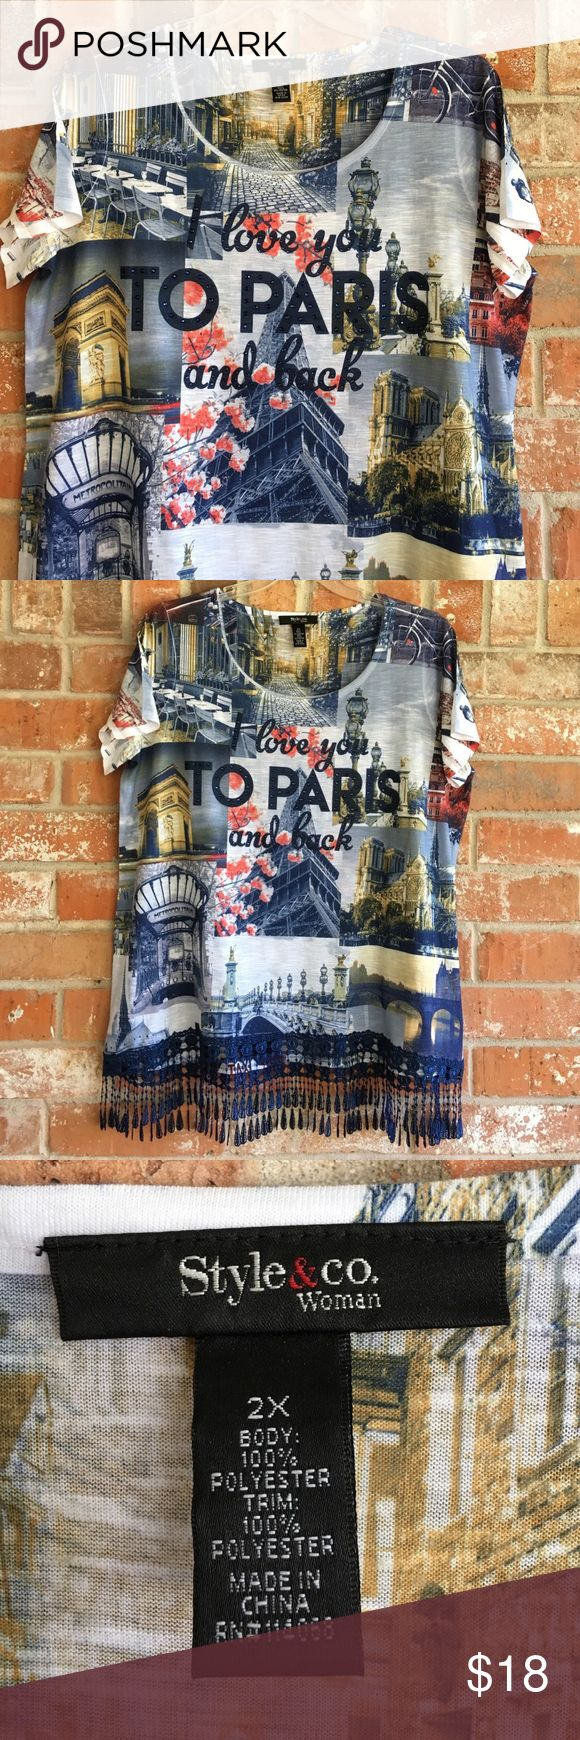 "Fringe/Graphic Top ""I LOVE YOU TO PARIS AND BACK"" This top is in EUC. No rips stains or tears. It measures 25"" underarm to underarm and us 29"" long including fringe trim. Style & Co Tops Blouses"